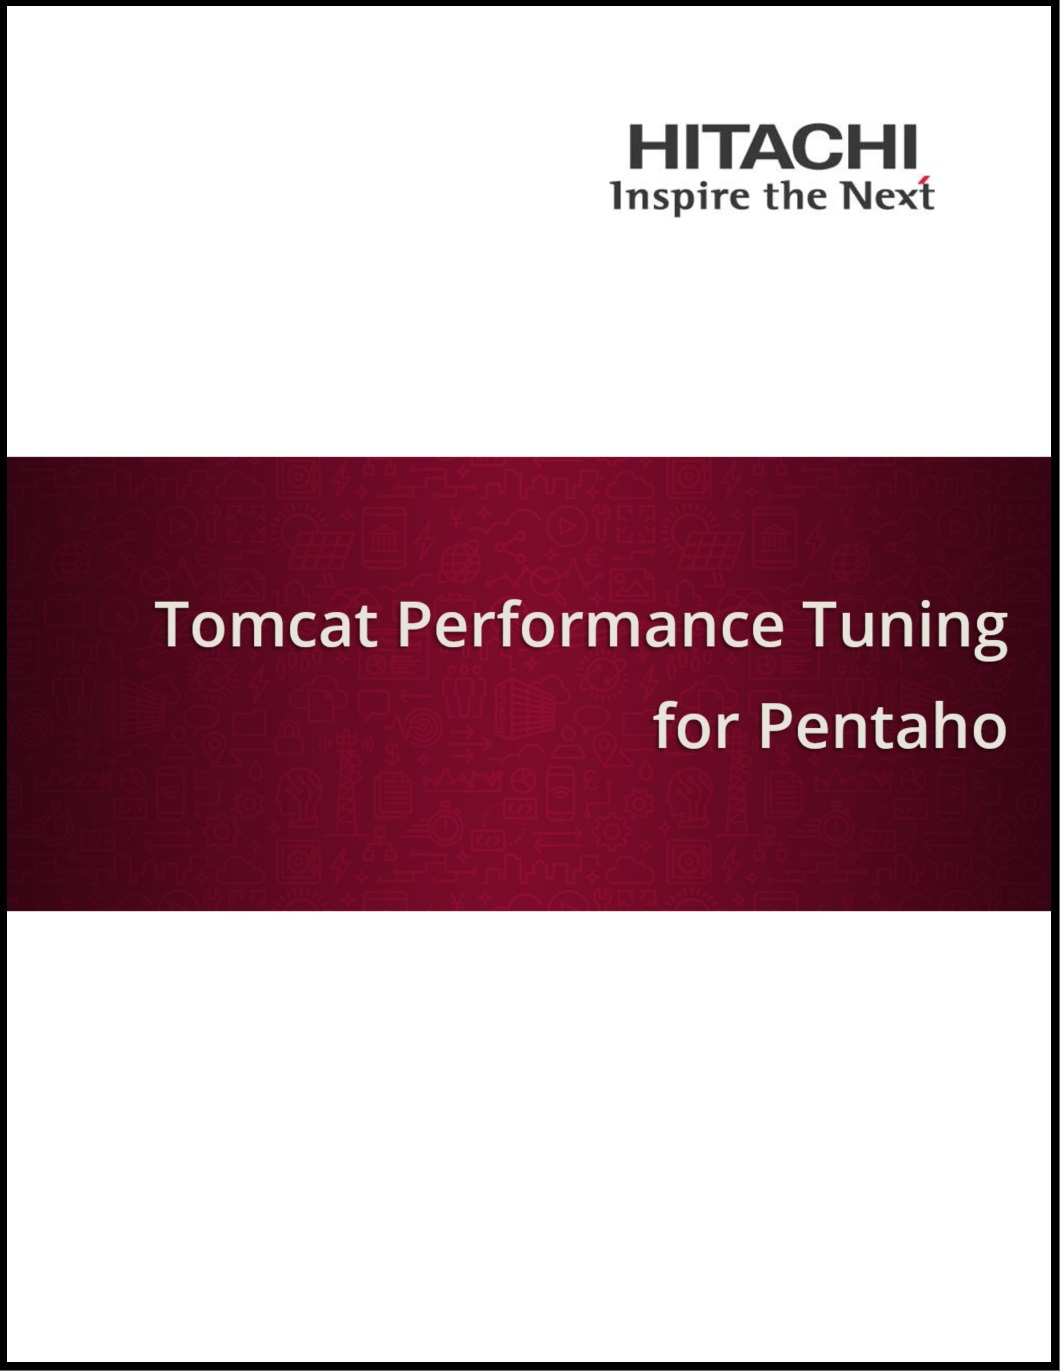 Tomcat_Performance_Tuning_for_Pentaho.jpg